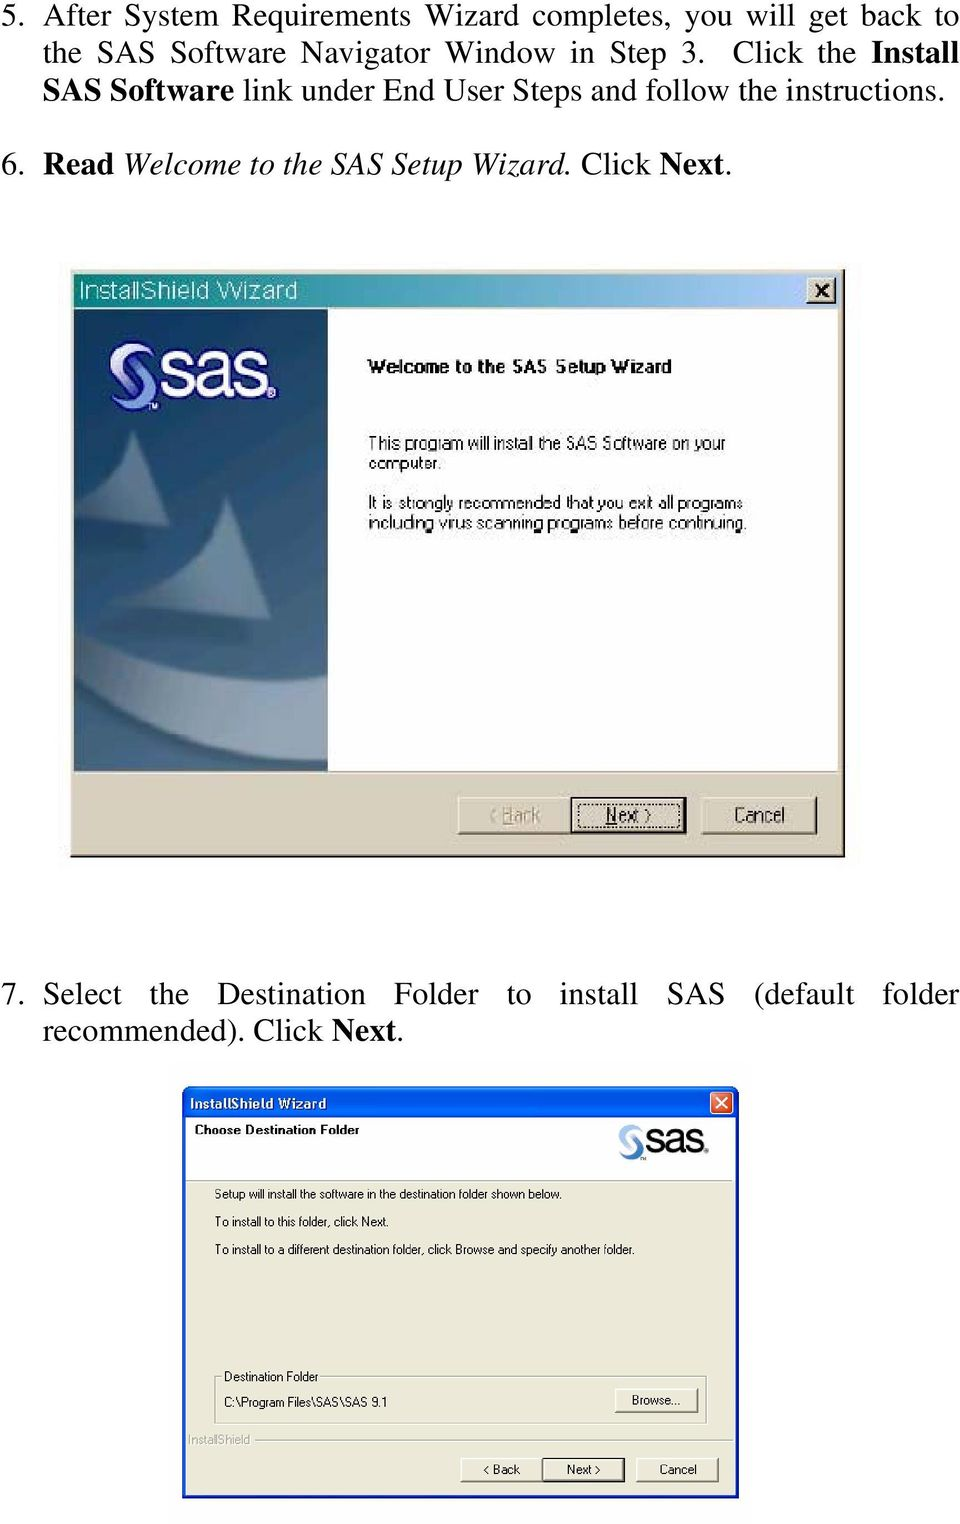 Click the Install SAS Software link under End User Steps and follow the instructions.